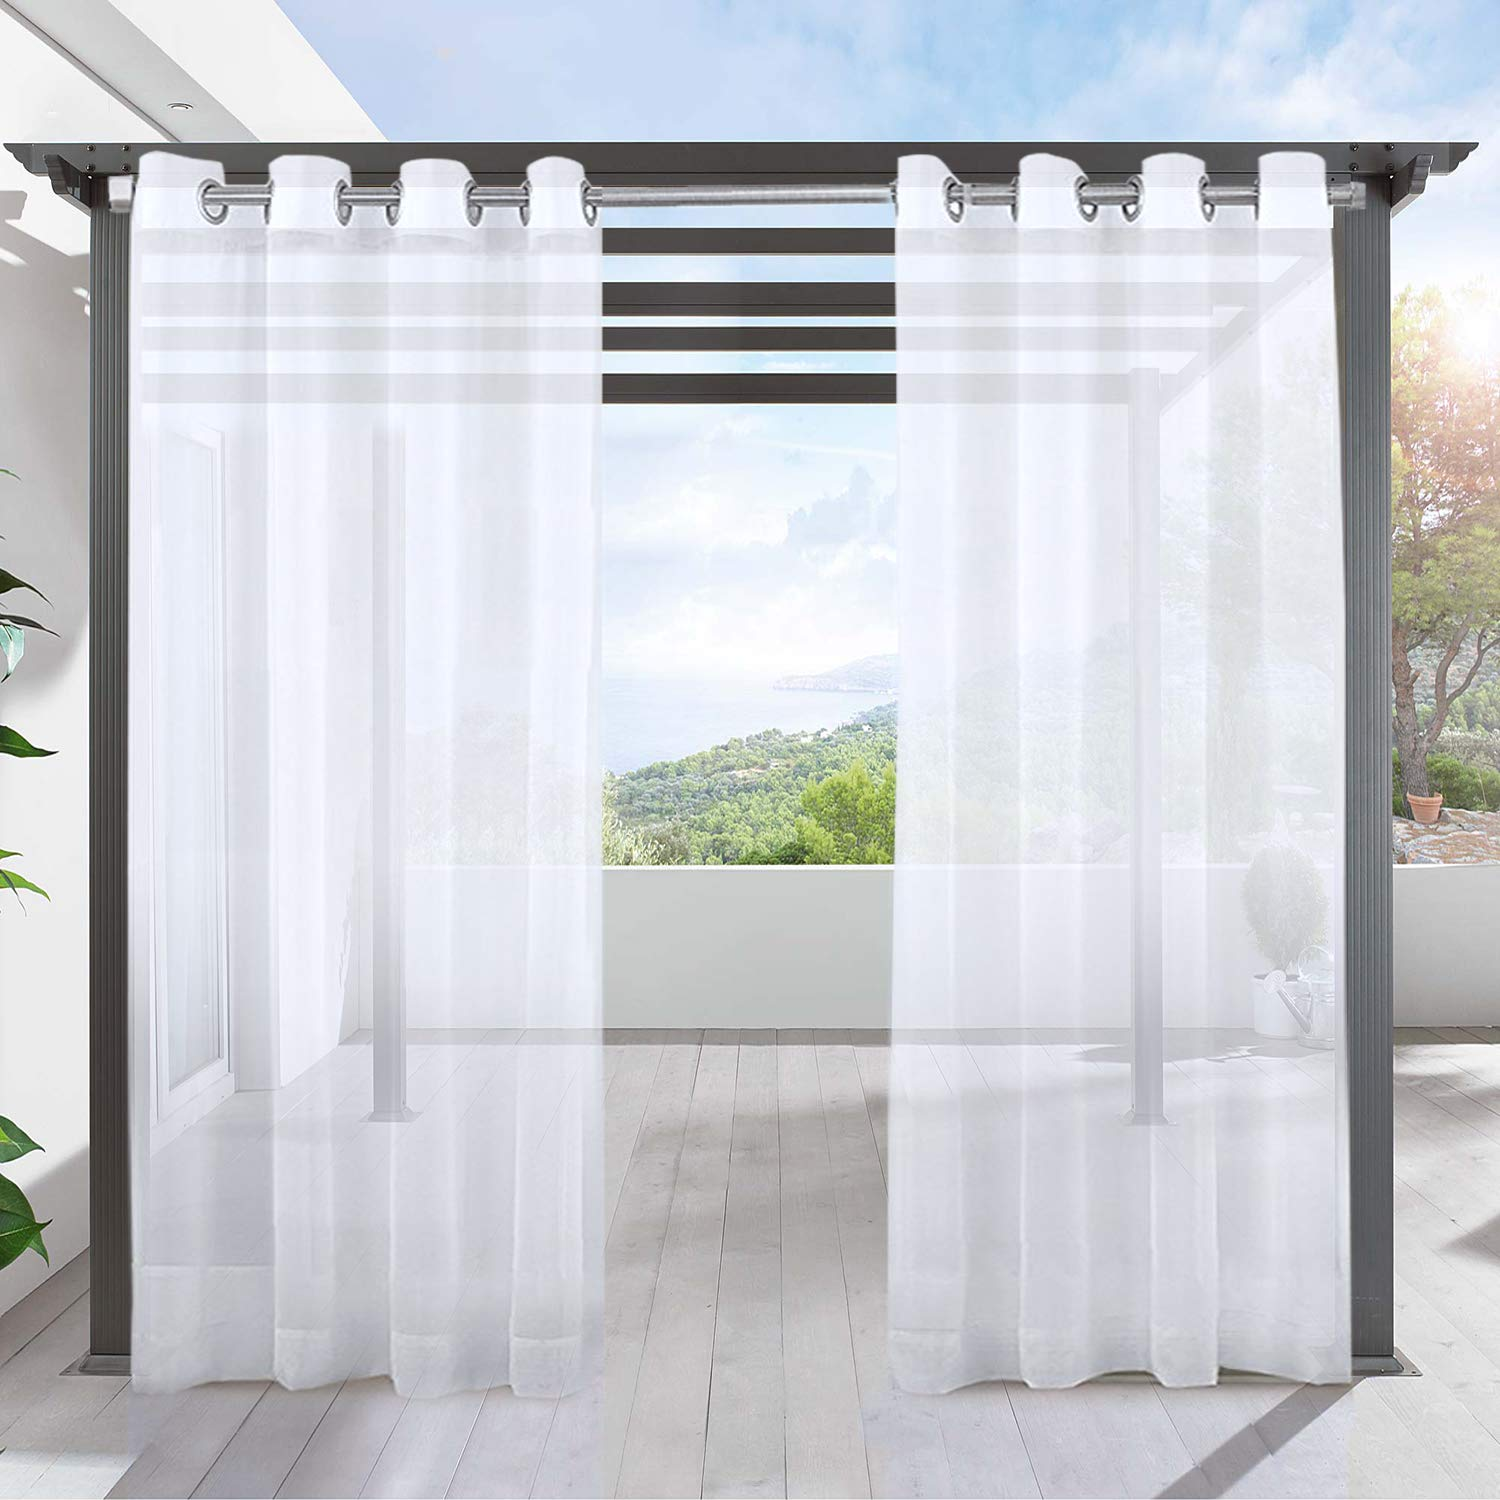 LIFONDER White Patio Sheer Curtains - Grommet Top Waterproof Light Filtering Voile Sheer Drapes with 2 Tiebacks for Balcony/Porch/Deck Decor, 54'' Wide by 108'' Long, 2 Panels